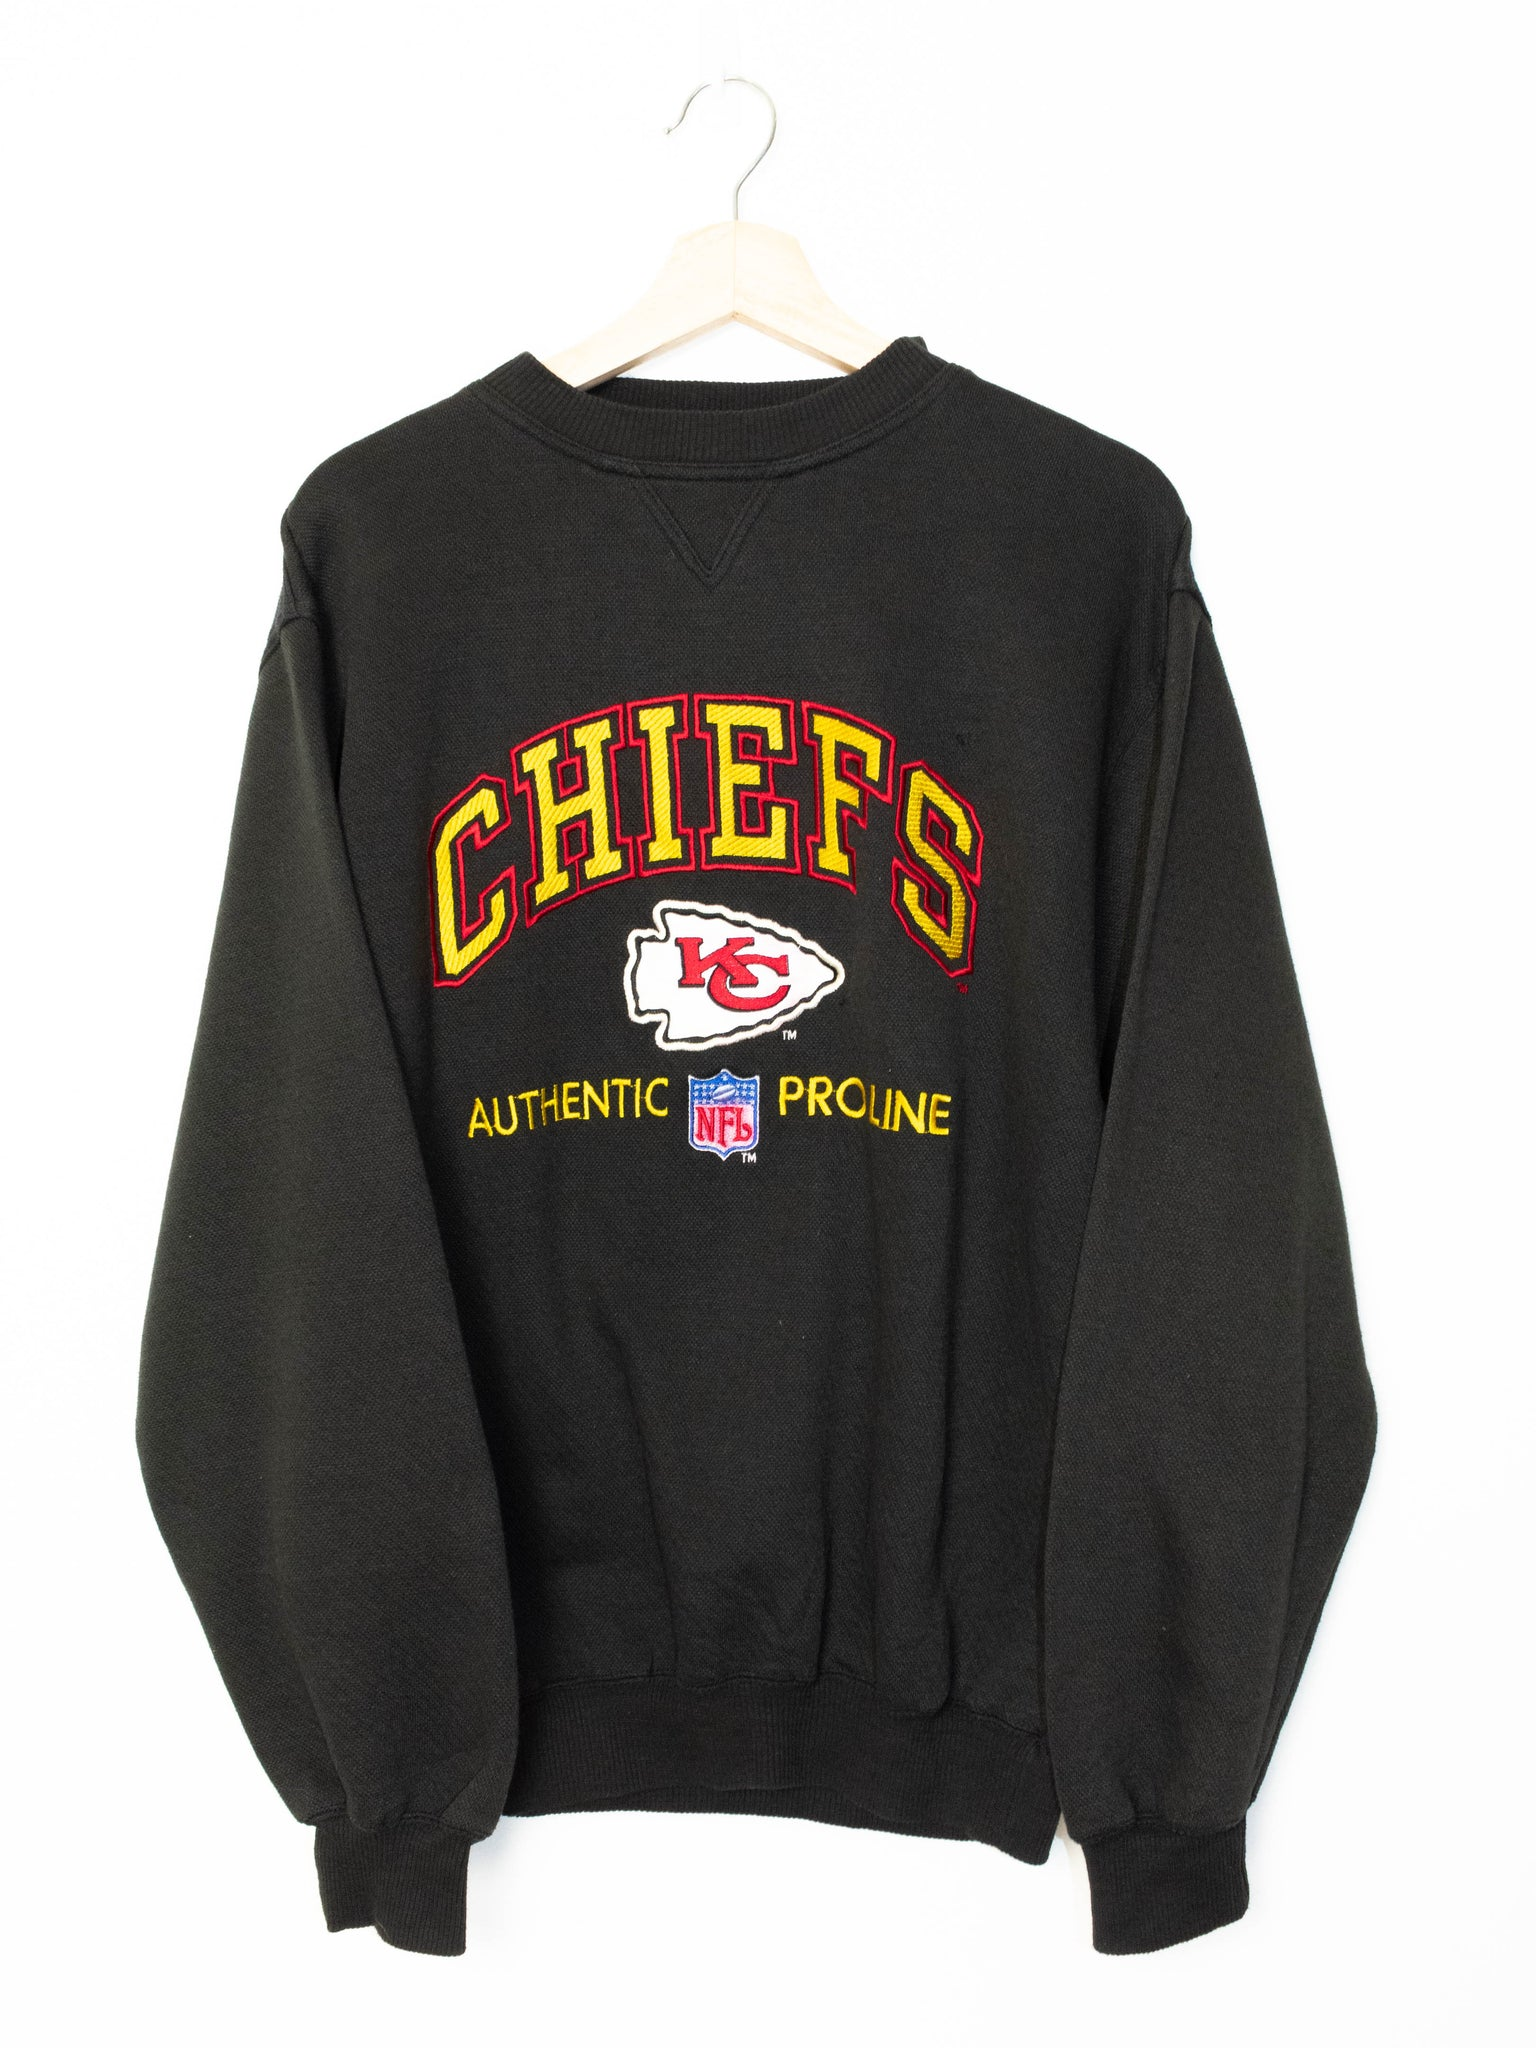 Vintage Kansas City Chiefs sweater size: M